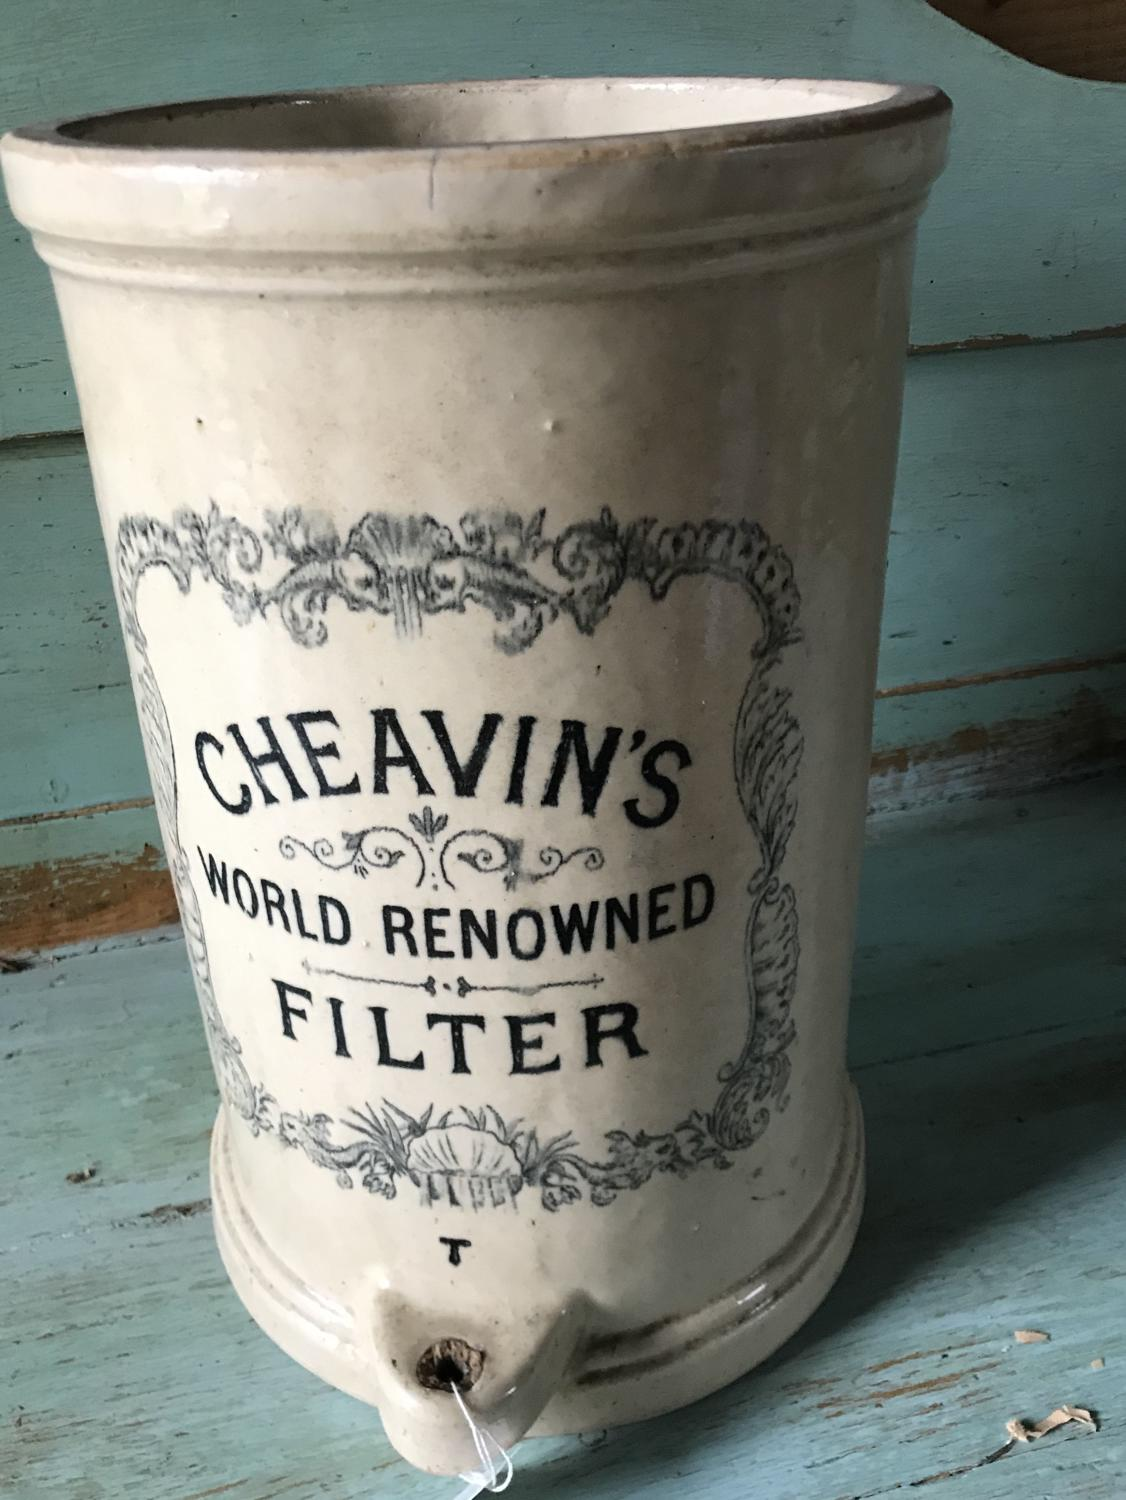 Large Cheavin's Water Filter